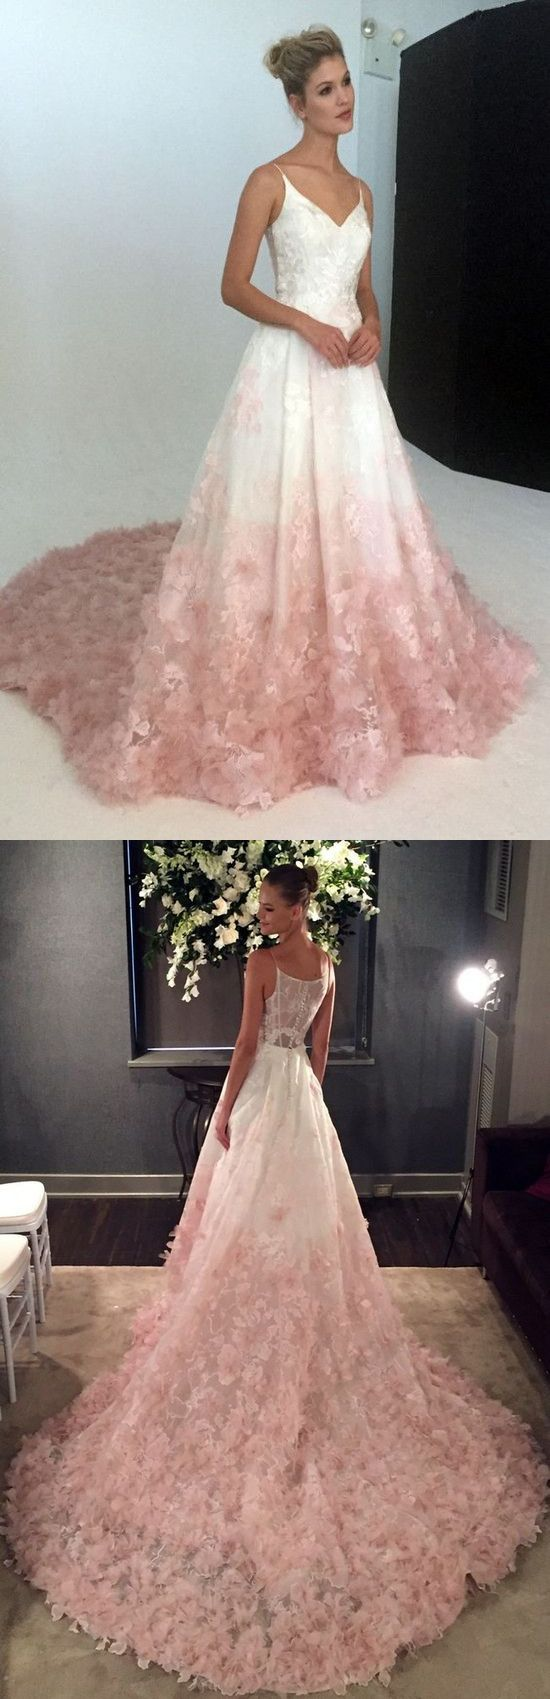 elegant straps white and pink long prom dress wedding dress ...